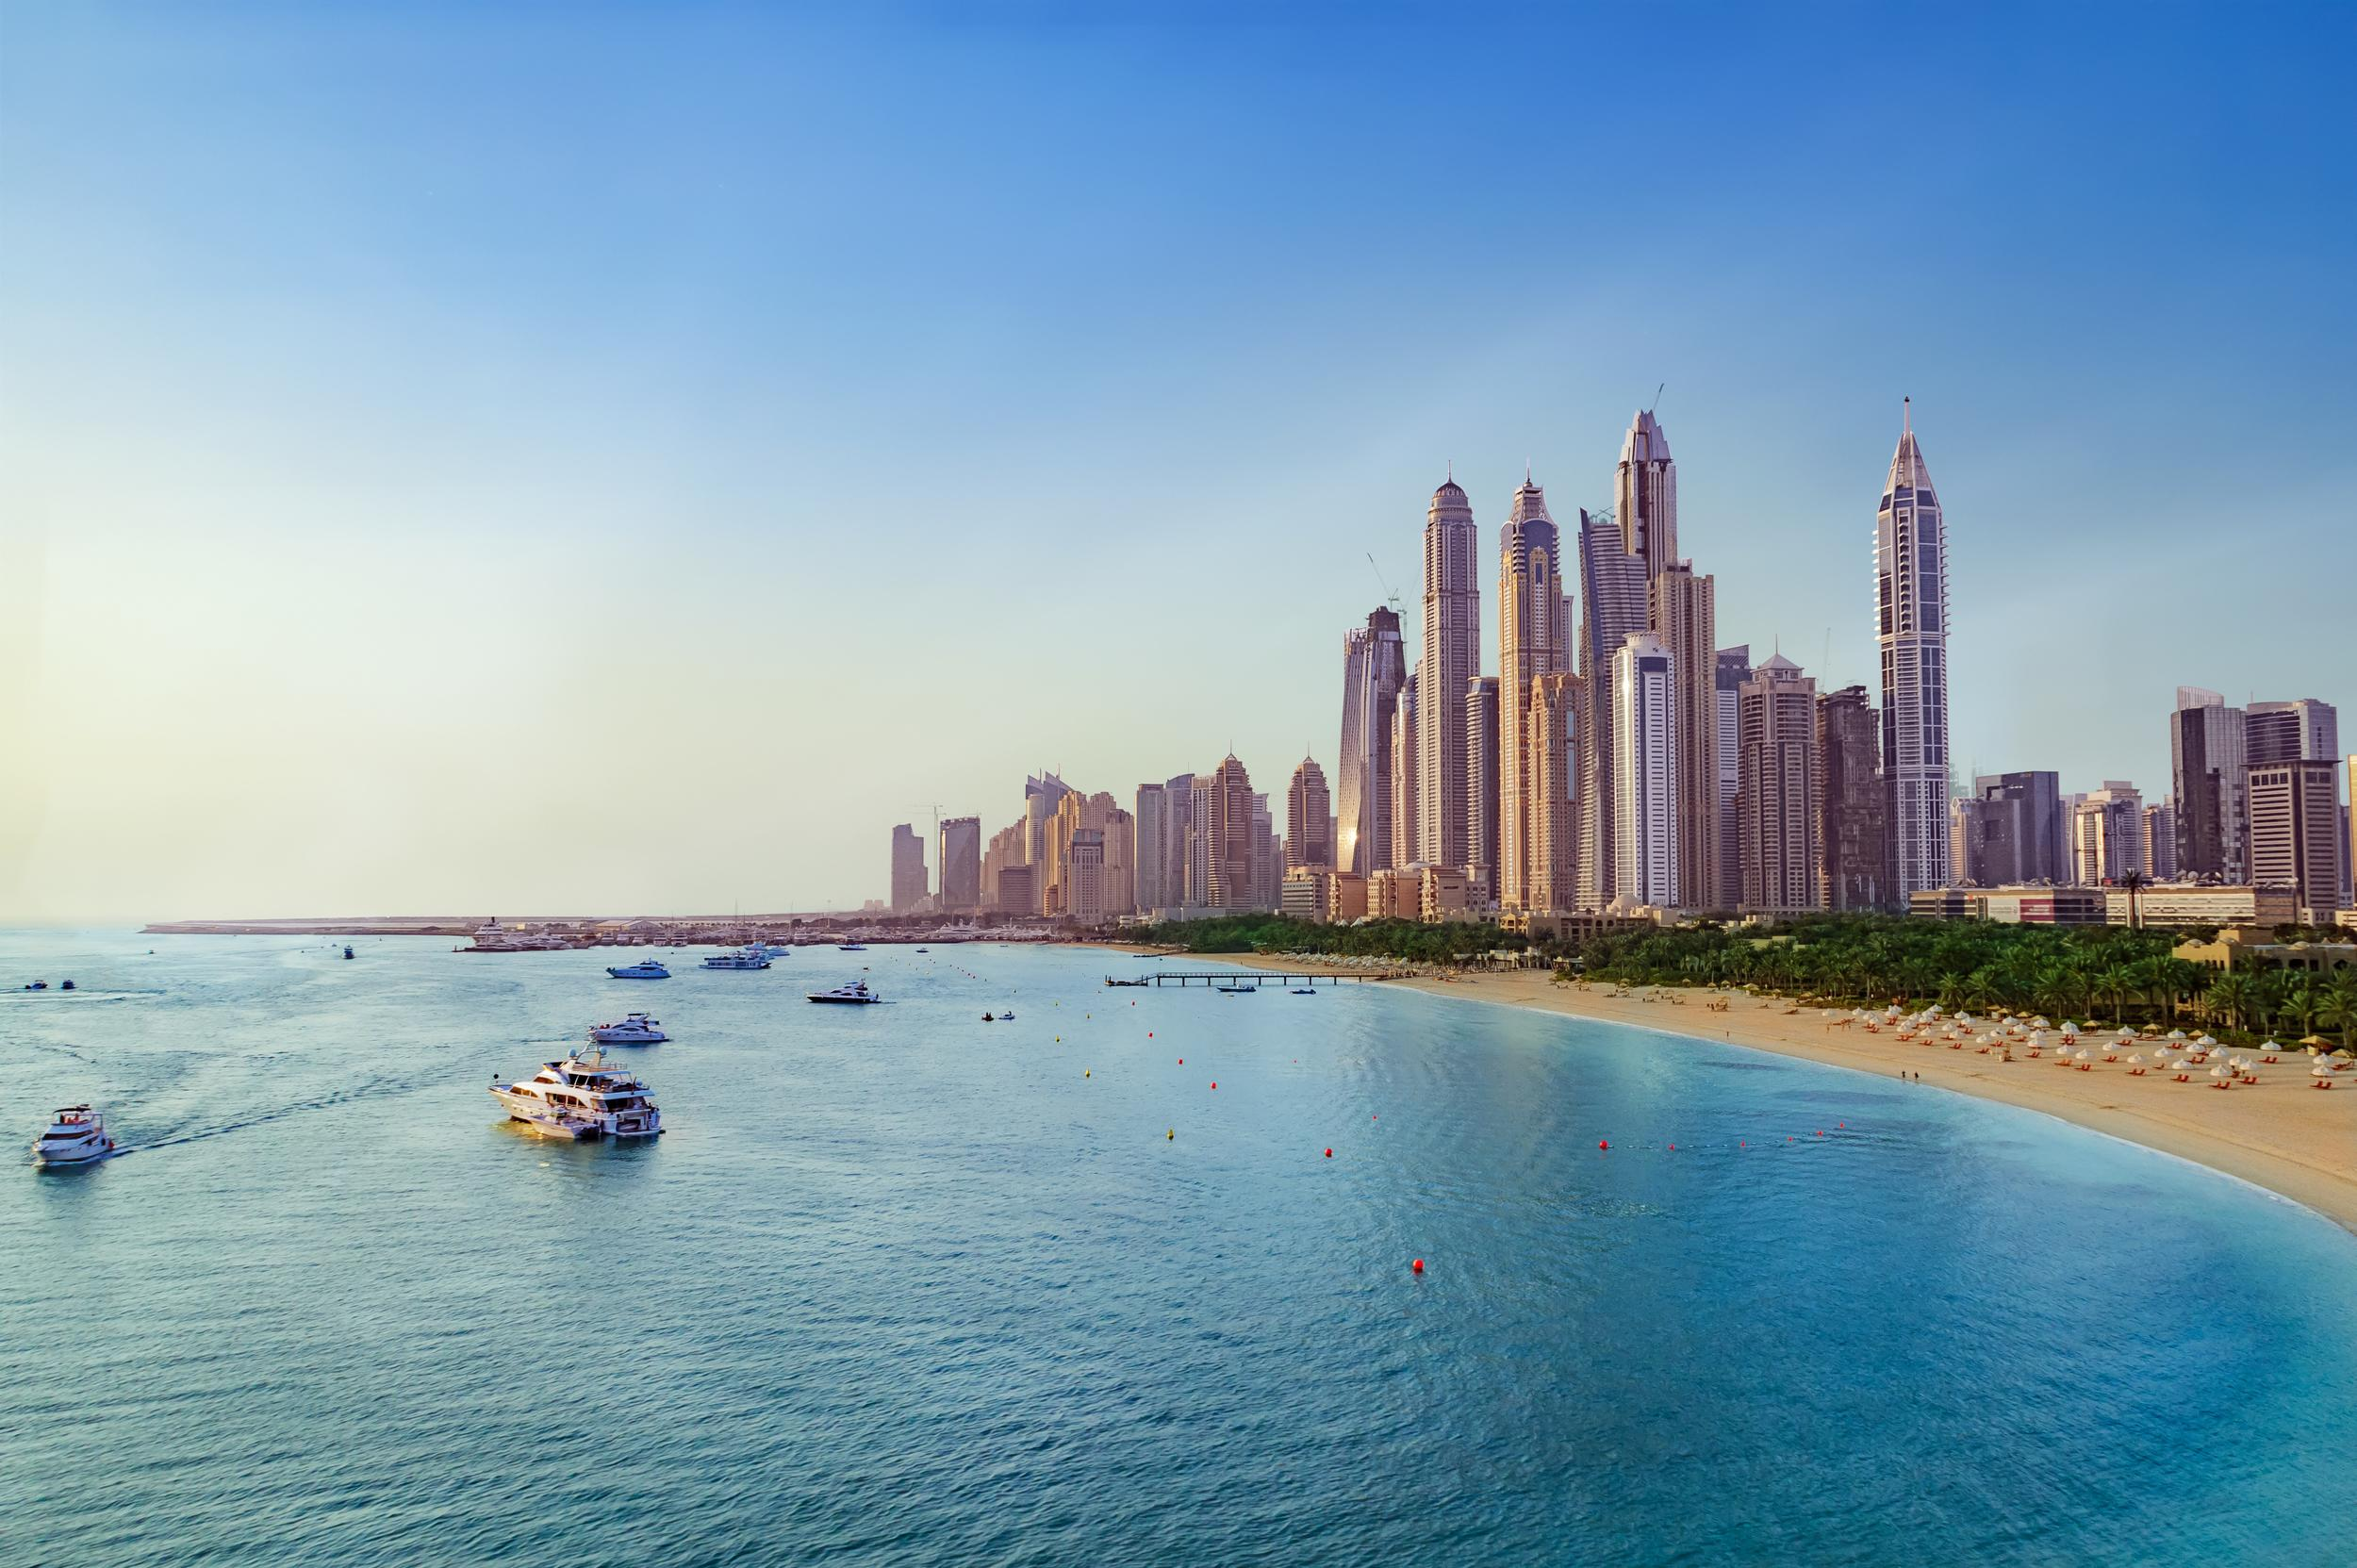 """Dubai is our number one destination for a family beach holiday this year, as it continues to offer glorious sunshine, world-class attractions and plenty to keep both the adults and children entertained. <a href=""""http://www.southalltravel.co.uk/"""" target=""""_blank"""">Southall Travel</a> says Dubai is its most popular long-haul beach destination for 2017, proving that Britons' love for the Middle Eastern hotspot continues. This year has also seen the opening of the highly anticipated <a href=""""https://www.legoland.com/dubai/map-and-explore/water-park-rides-and-attractions/legoland-water-park/"""" target=""""_blank"""">LEGOLAND Water Park</a>, with over 20 water slides, a Build-A-Raft River, Wave Pool and Joker Soaker water playground. <a href=""""http://www.southalltravel.co.uk/Holidays/middle-east/dubai/atlantis.aspx"""" target=""""_blank"""">Southall Travel</a> offers an October half-term holiday to Dubai from £1,505 per person, staying at five-star family favourite Atlantis, The Palm, with flights from the UK and seven nights' half-board accommodation."""